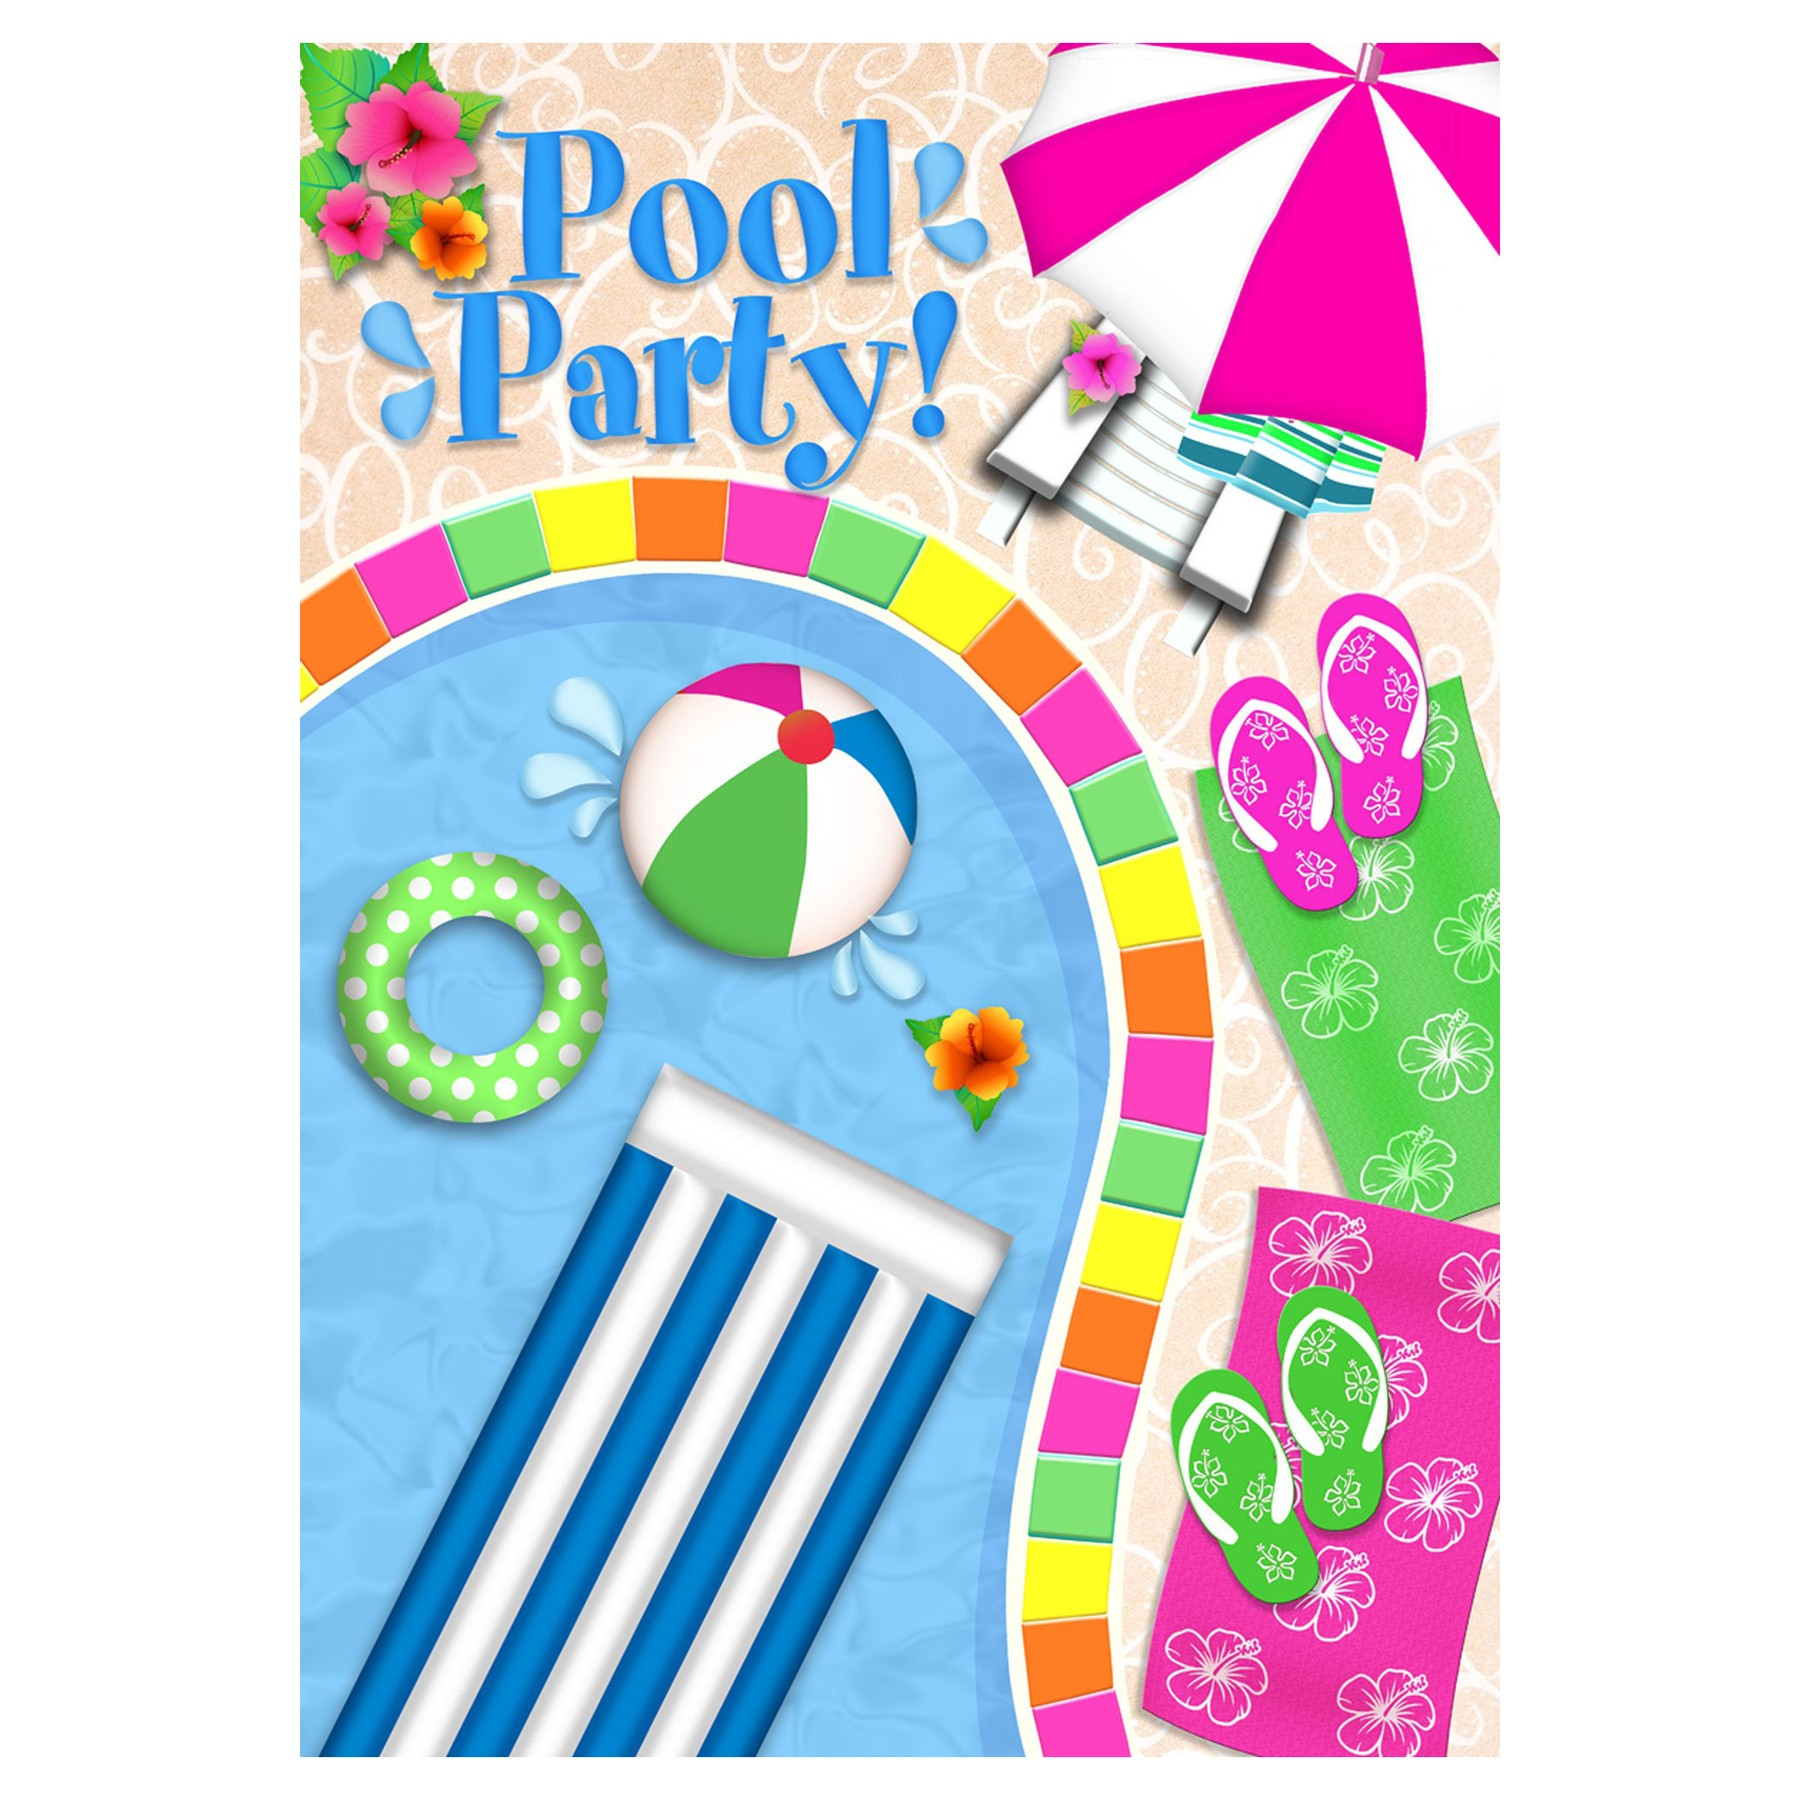 Water slide waterslide clipart free download clip art on